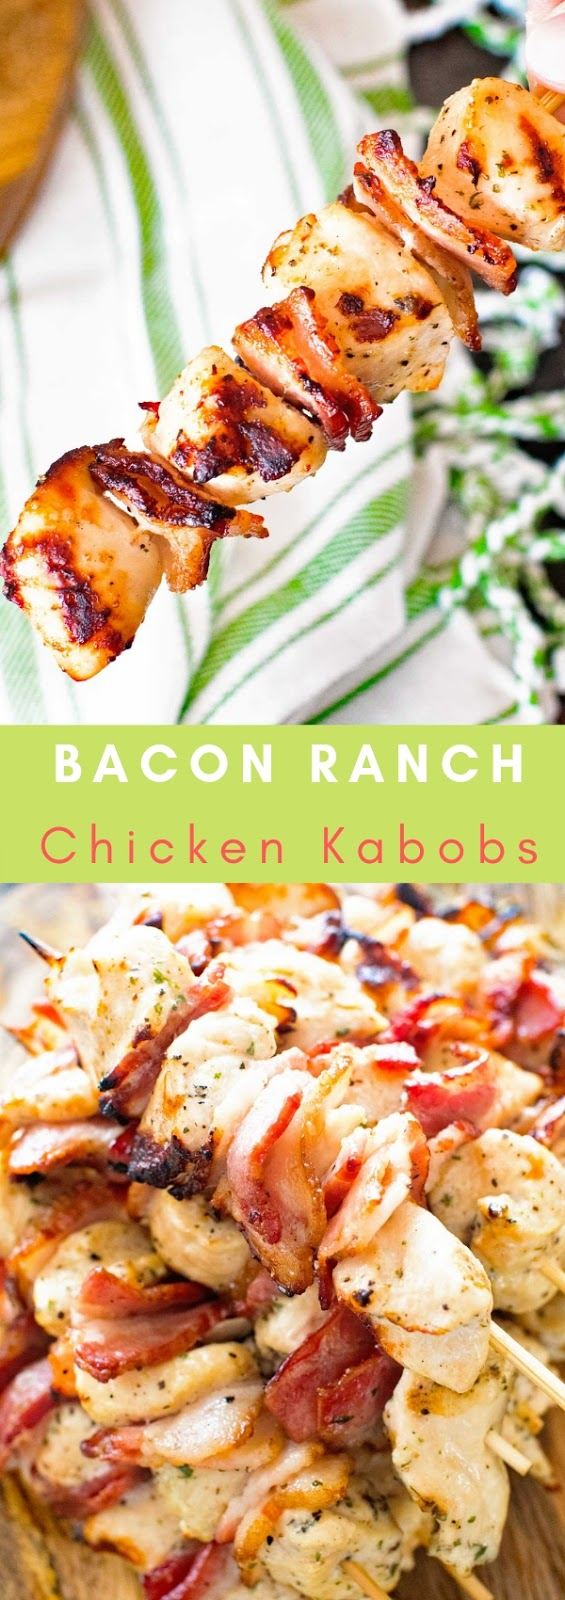 Bacon Ranch Chicken Kabobs Recipe #maincourse #dinner #bacon #ranch #chicken #kabobs